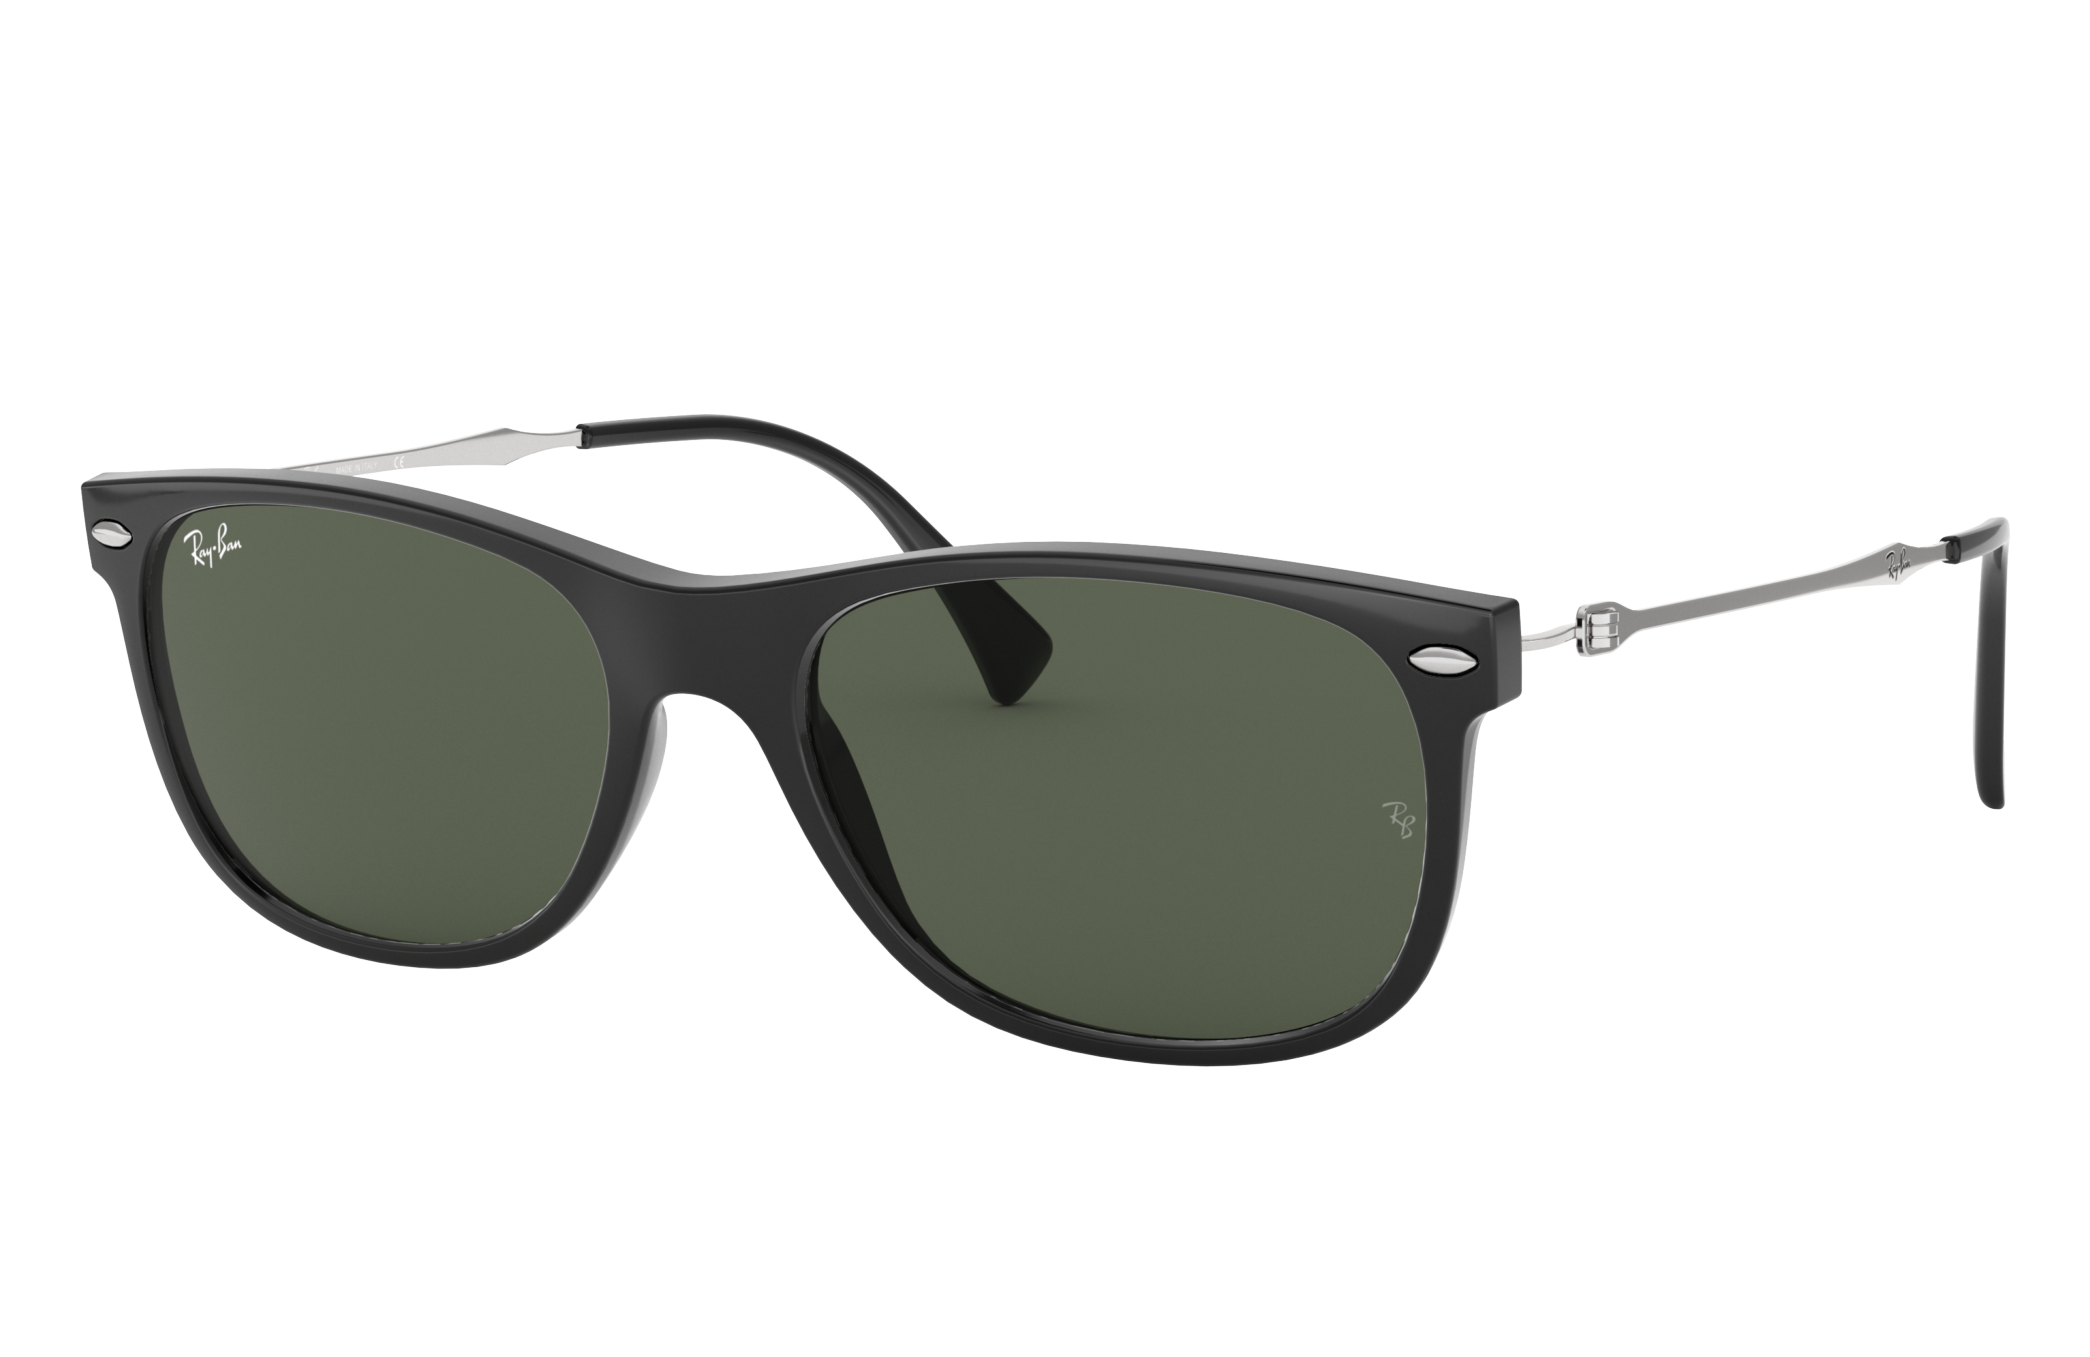 Ray-Ban Rb4318 Silver, Green Lenses - RB4318